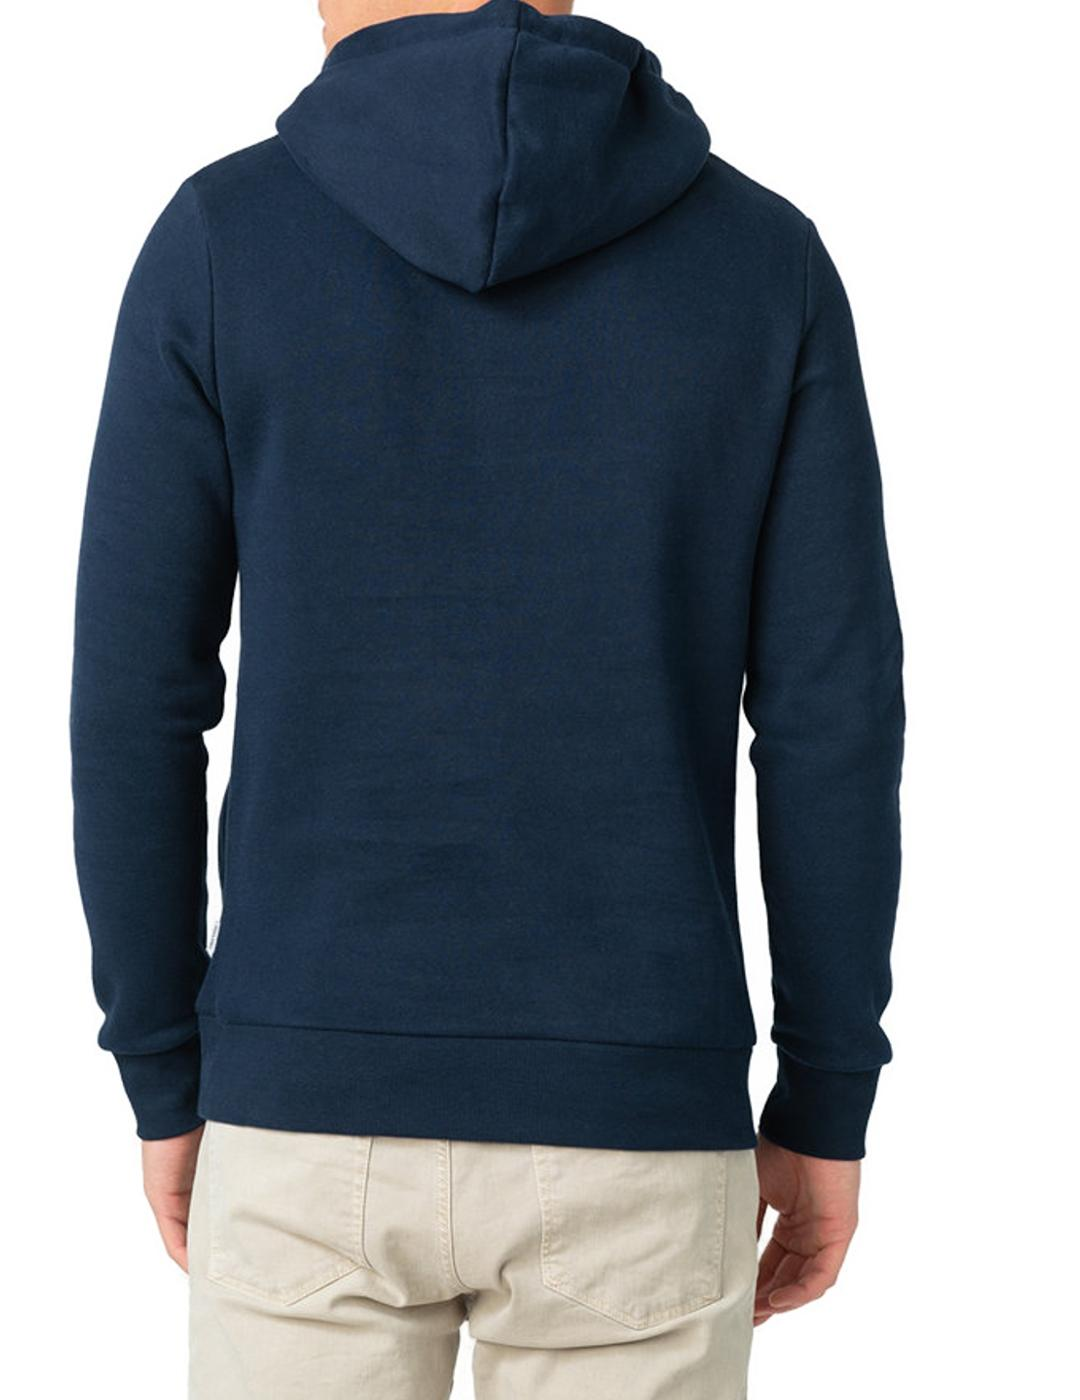 JJAPPLICATION SWEAT HOOD NAVY-X